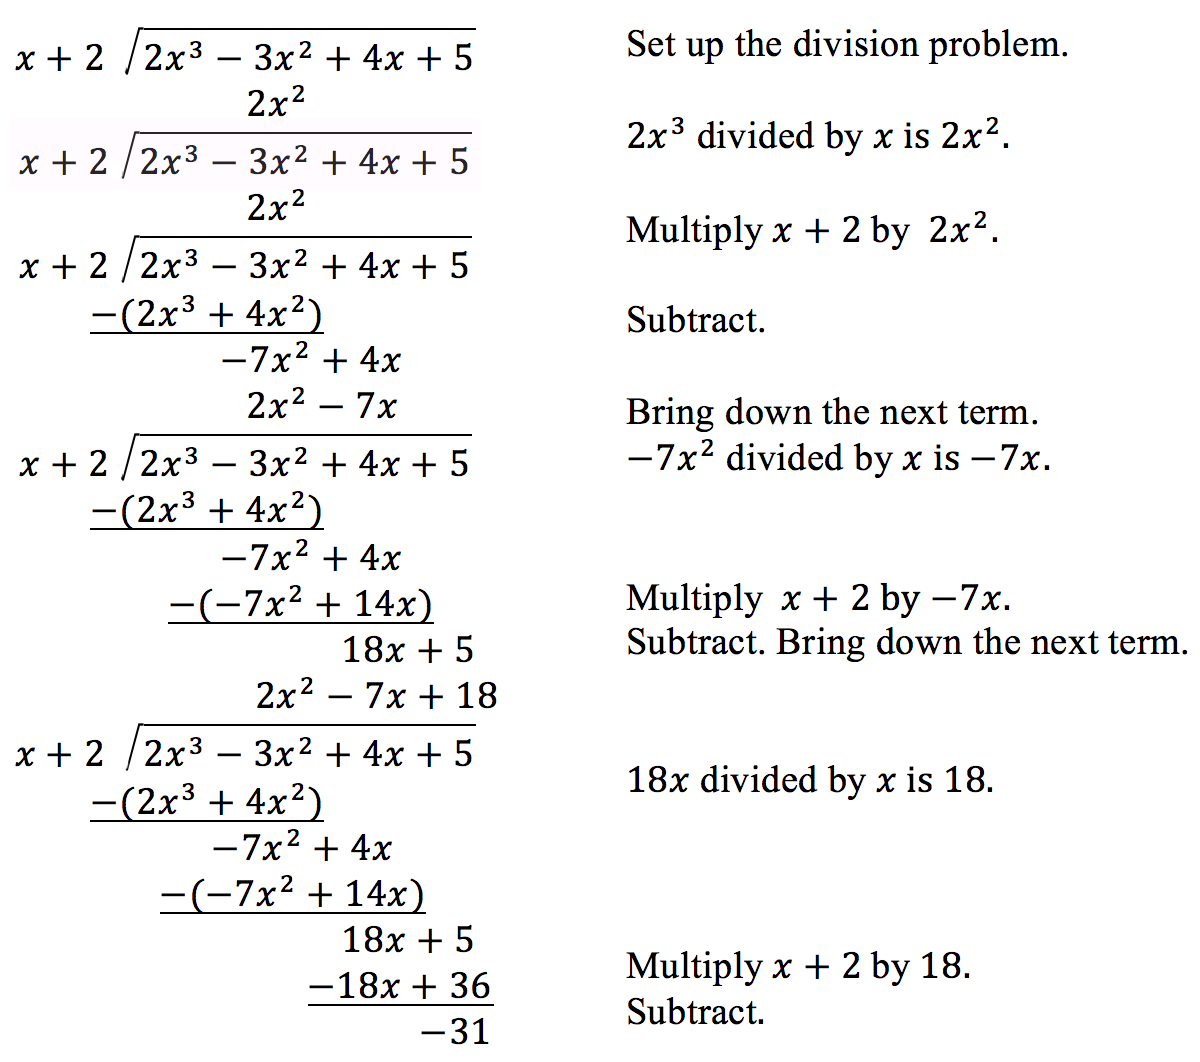 Worksheets Pre Calc Worksheets dividing polynomials precalculus steps of long division for polynomials